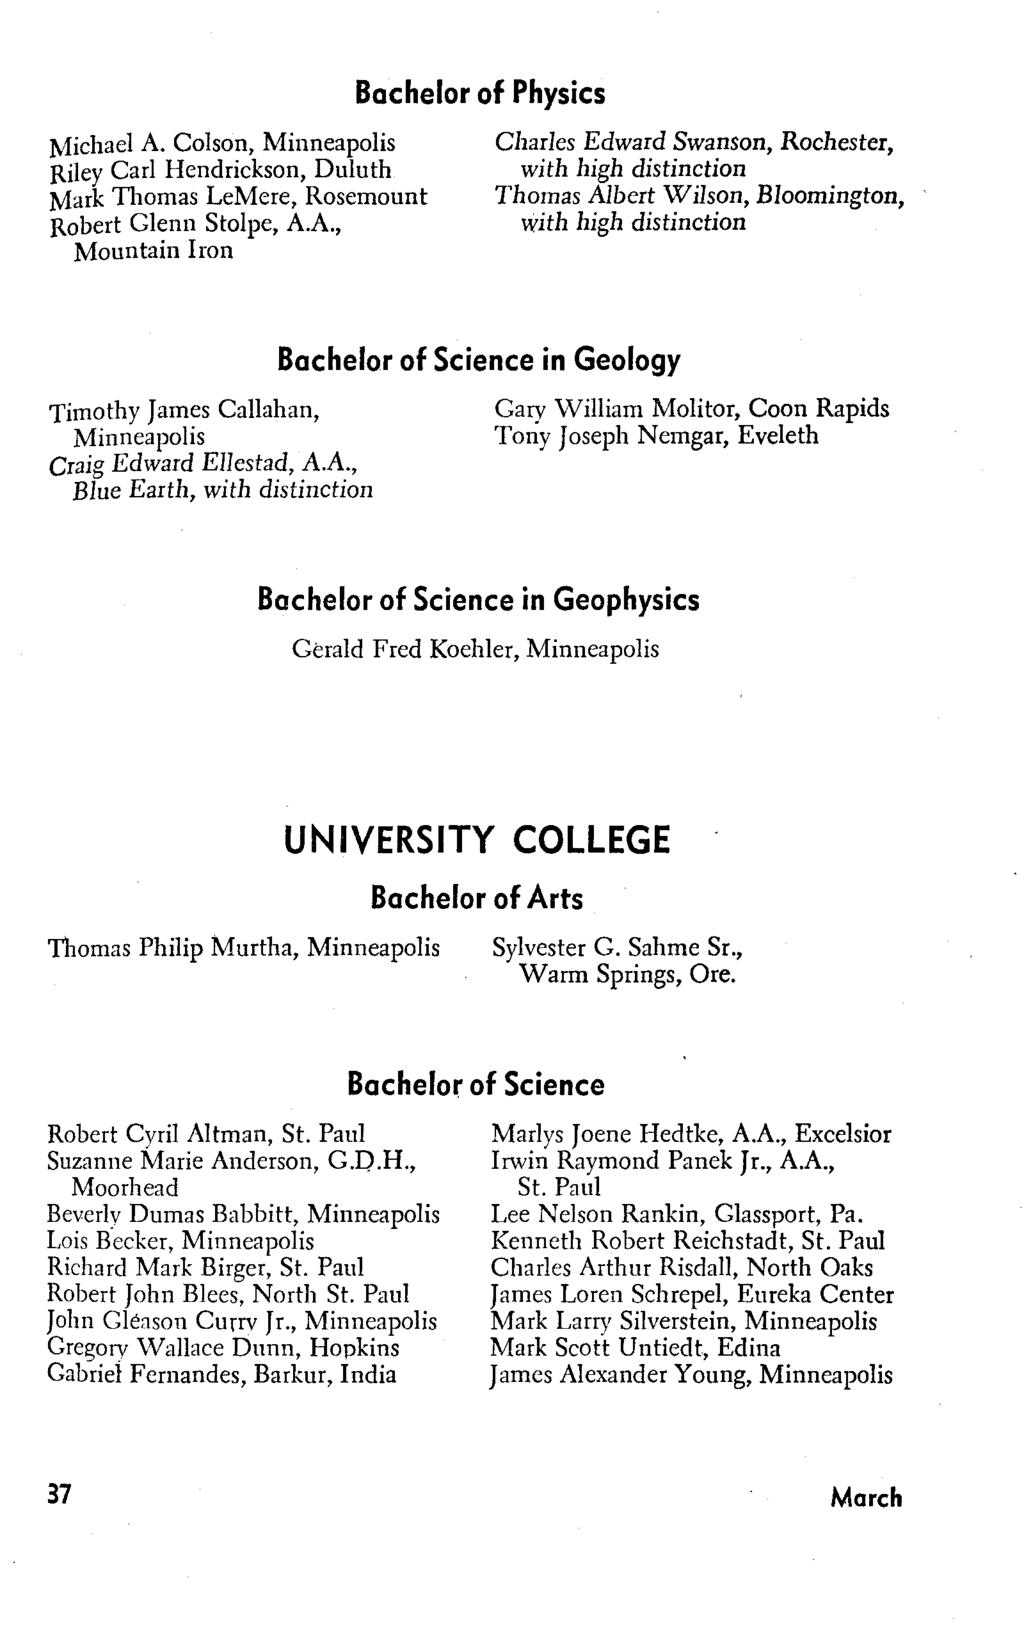 Michael A. Colson, Riley Carl Hendrickson, Duluth Mark Thomas LeMere, Rosemount Robert Glenn Stolpe, A.A., Mountain Iron Bachelor of Physics Charles Edward Swanson, Rochester, Thomas Albert Wilson, Bloomington, Timothy James Callahan, Craig Edward Ellestad, A.